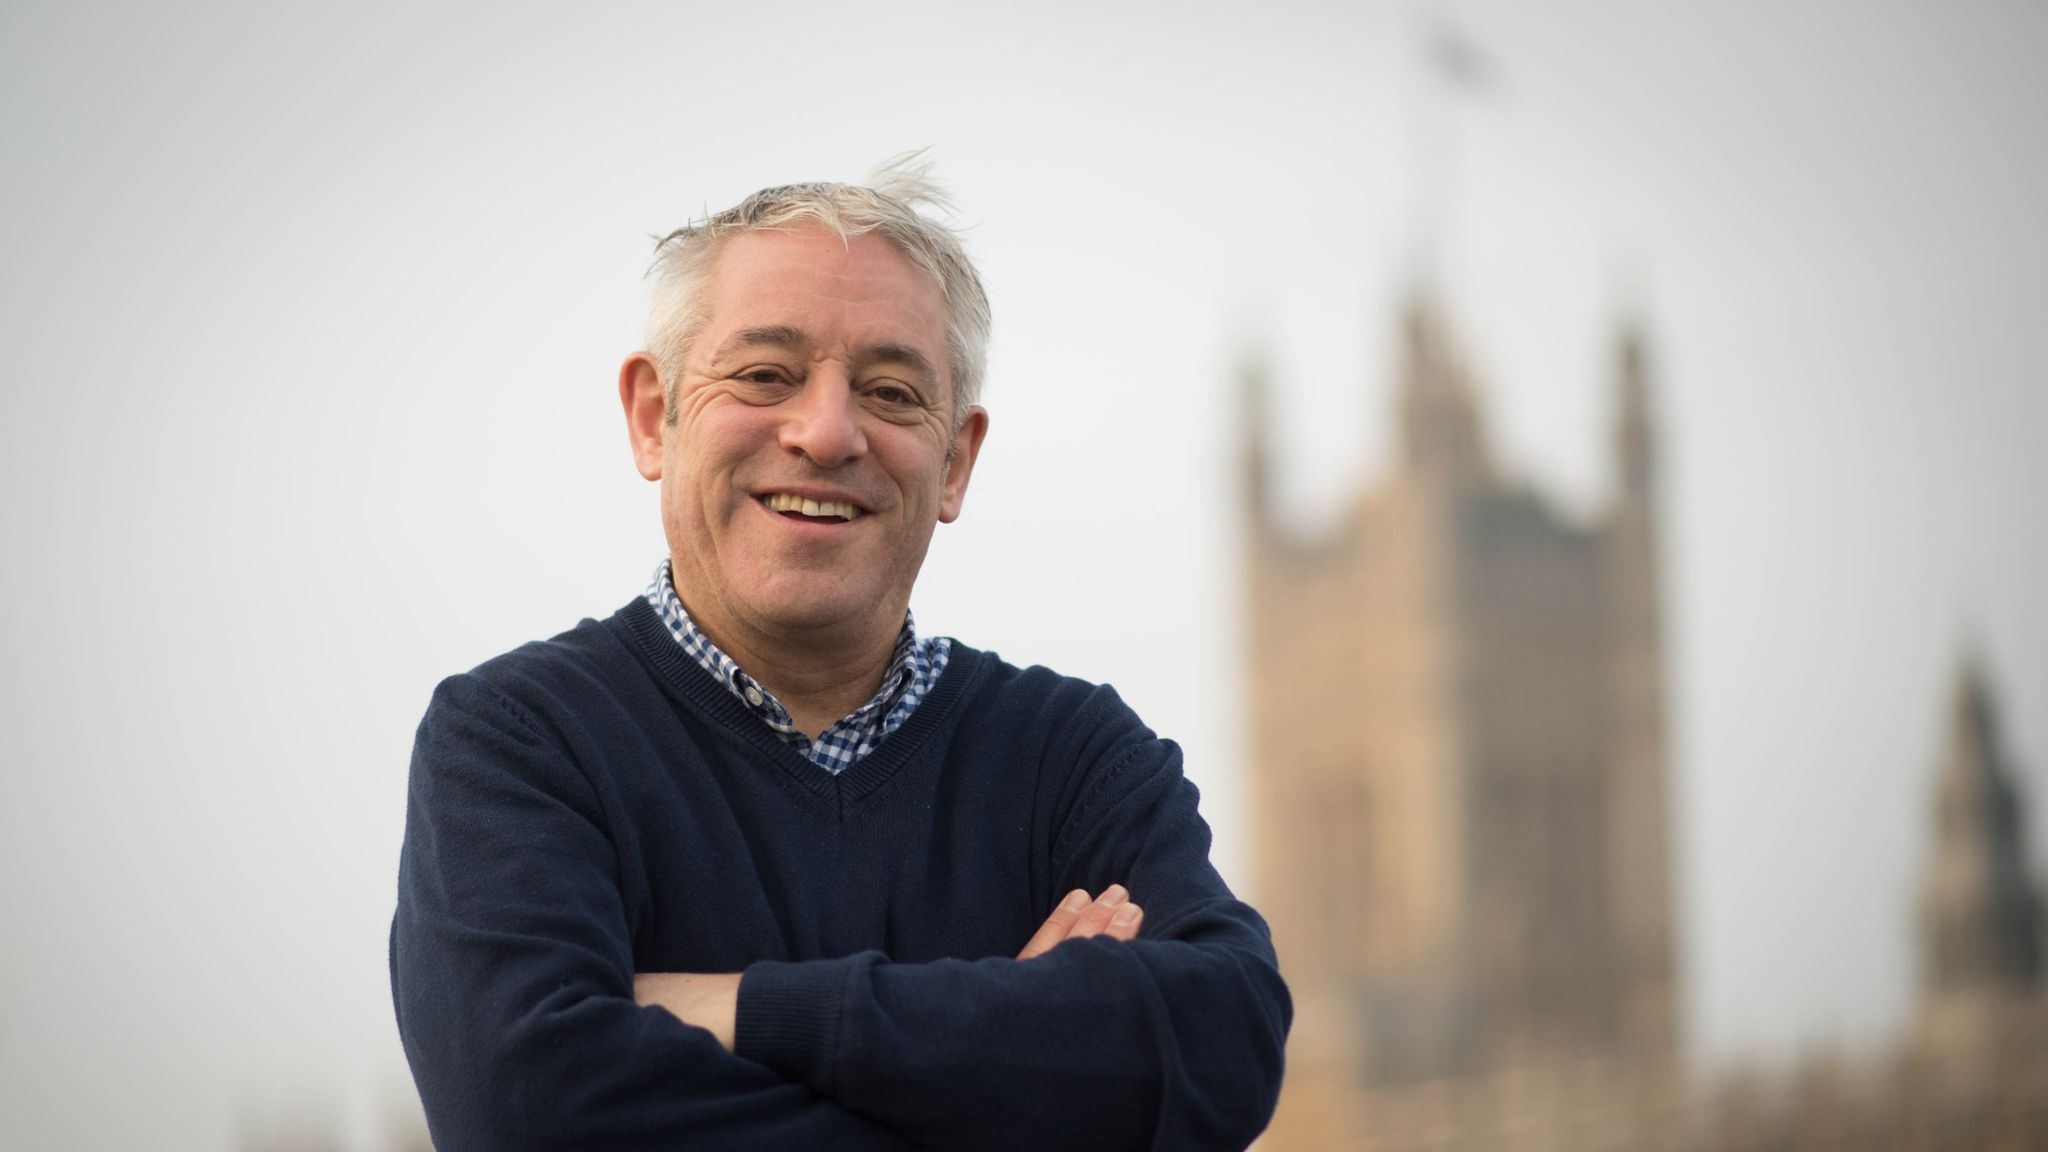 Downing Street: John Bercow peerage from Labour would go against convention